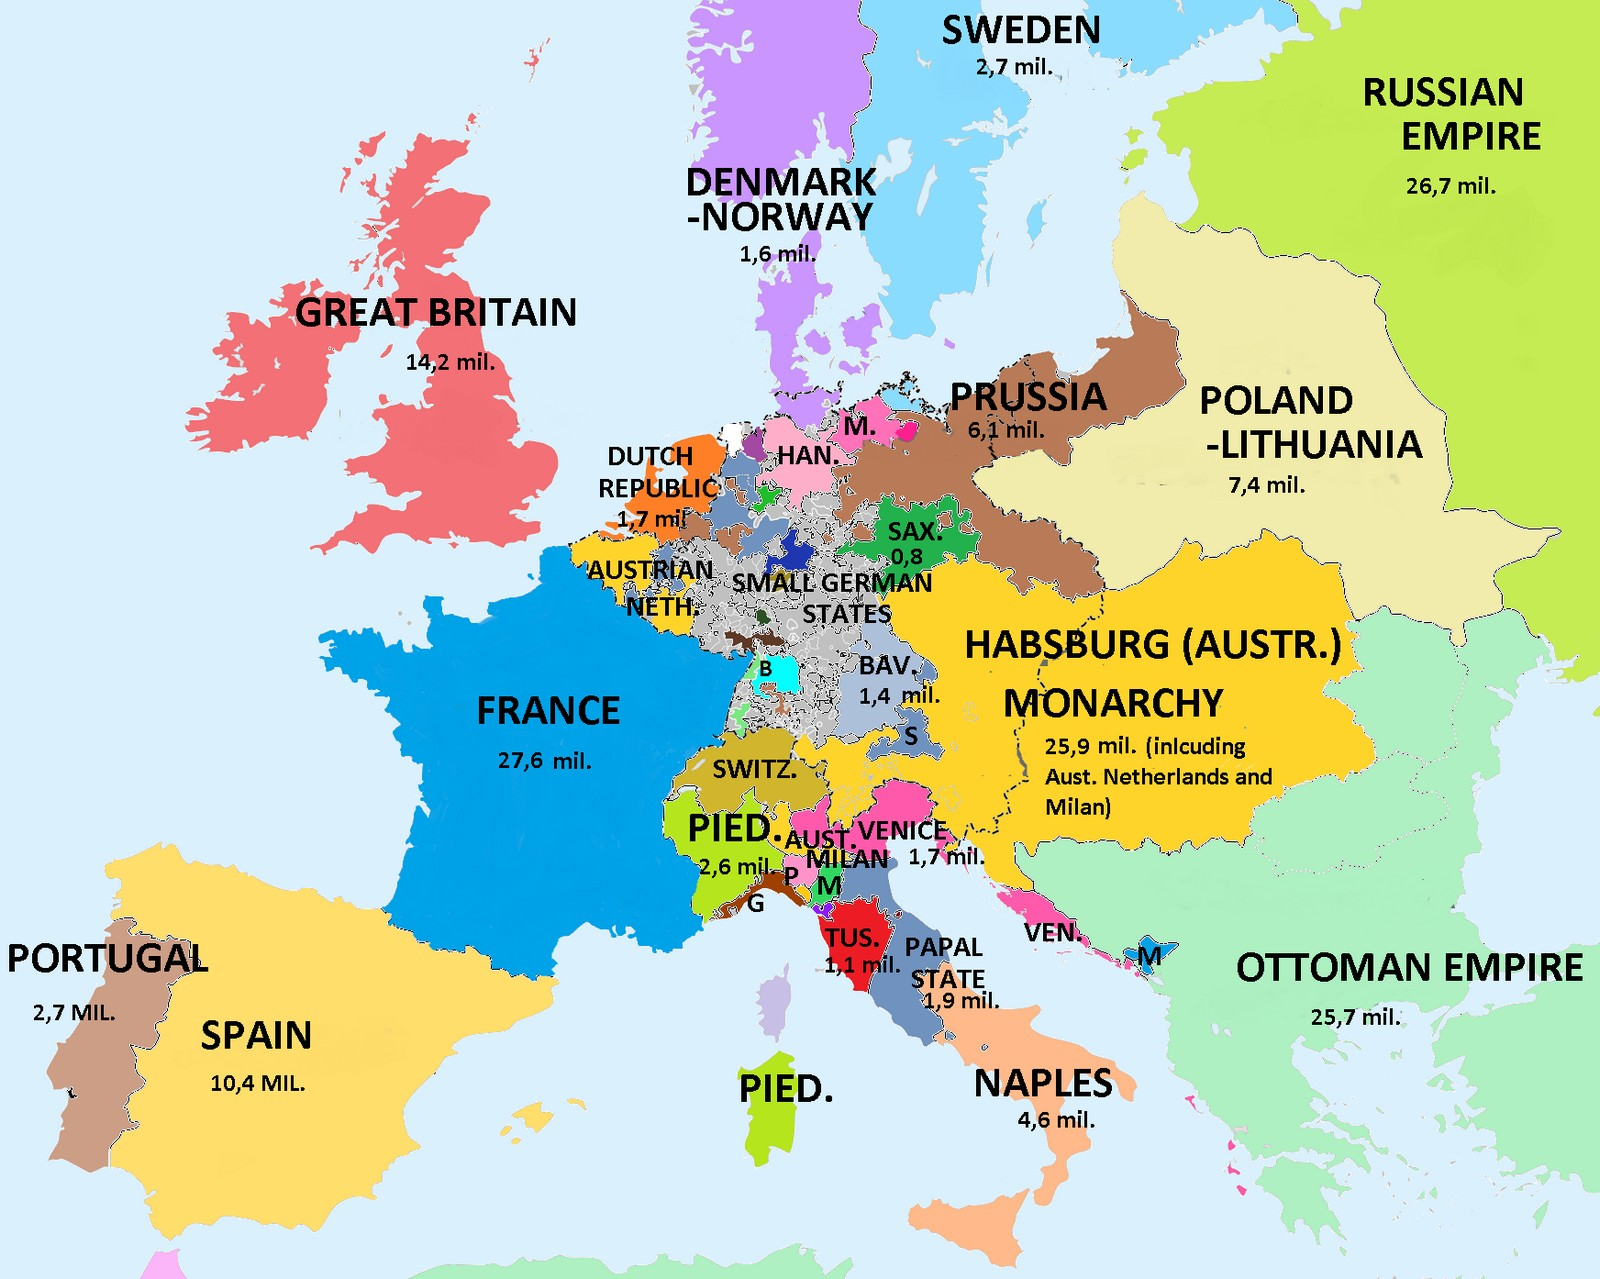 Map Of France French Revolution.Europe On The Eve Of The French Revolution Vivid Maps